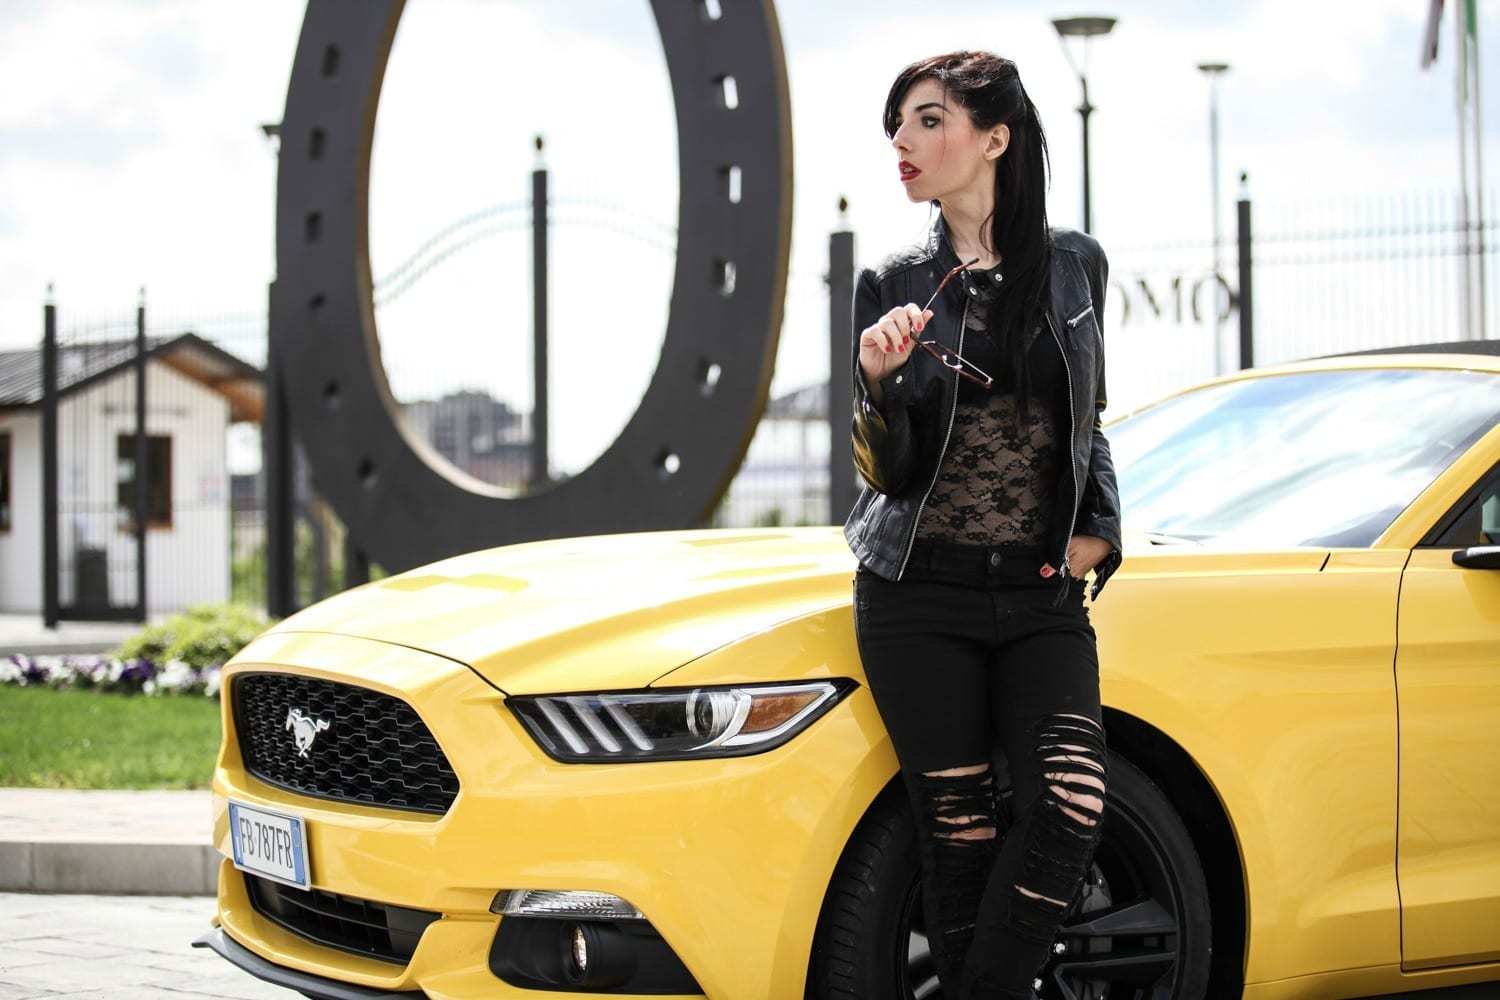 mustang, Mustang , Ford Mustang 2016, theladycracy.it, elisa bellino, fashion bloggers, fashion blog, fashion bloggers italiane, fashion blogger italia, muscle car significato, storia ford mustang, donne e motori, total black edgy look, black ripped denim, fashion blogger milano, blogzine milano, fashion blogger famose, web influecer italia, black lace body, tendenze moda primavera estate 2016, outfit blogger primavera 2016, ford mustang gialla convertible